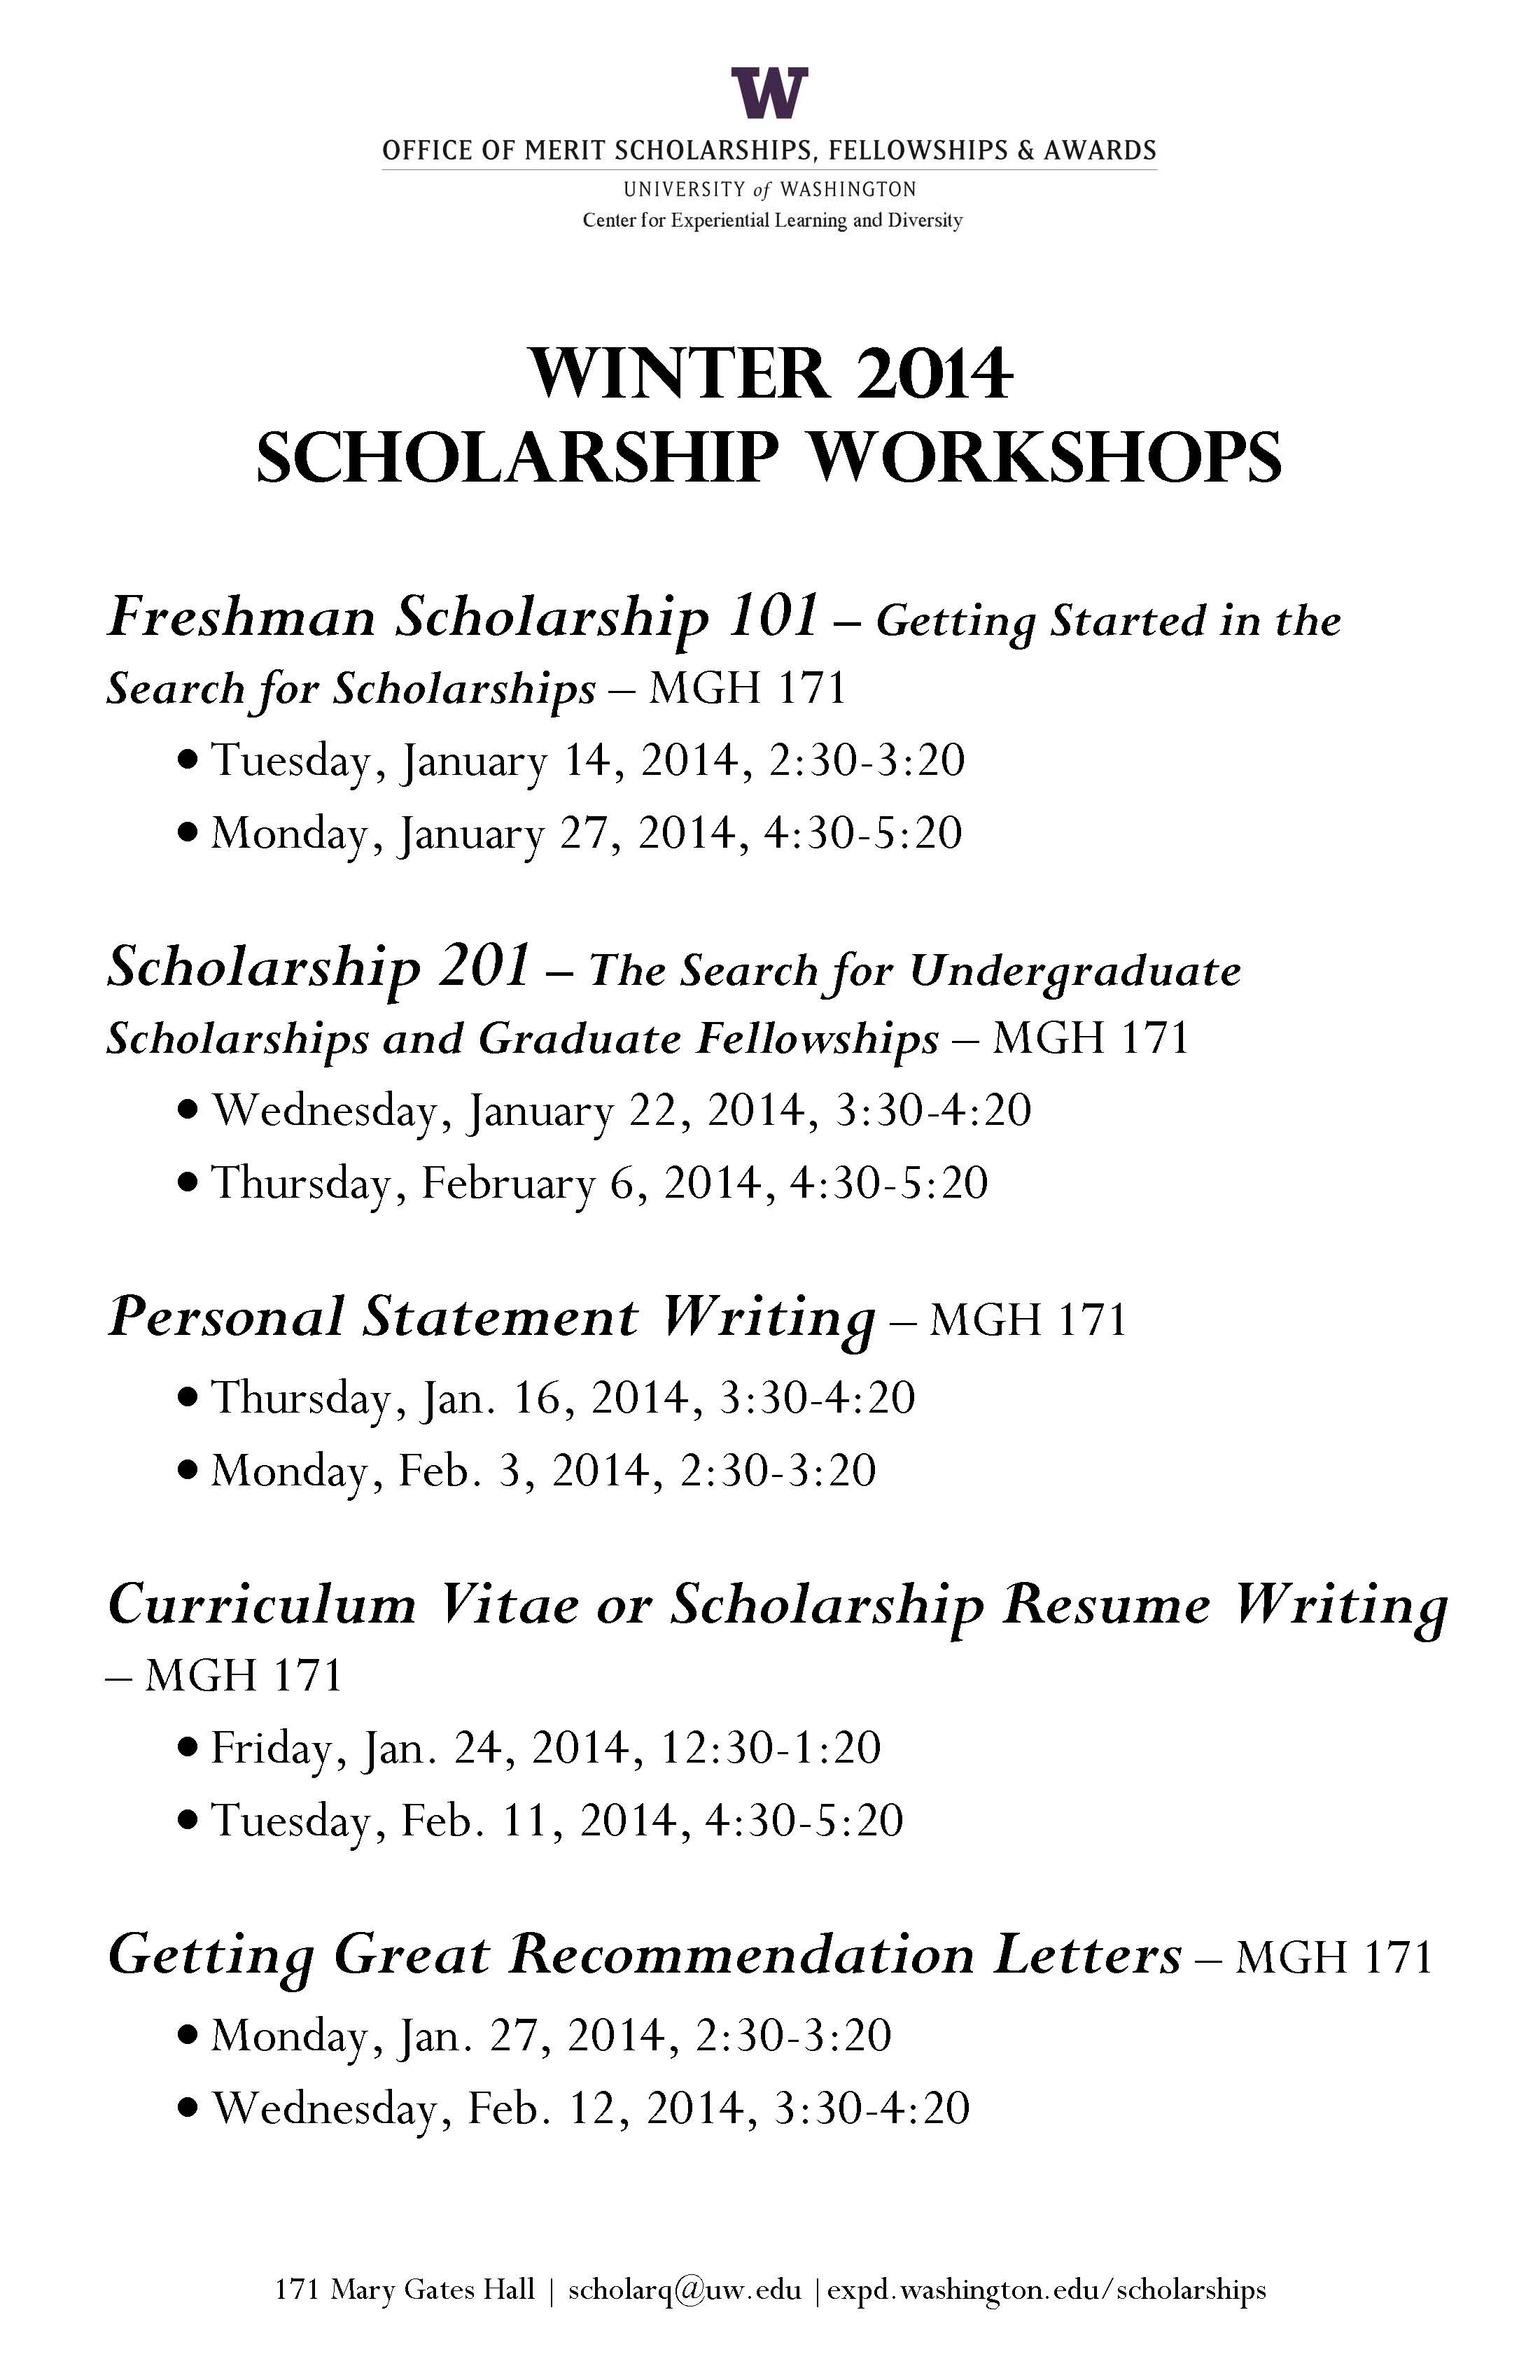 Scholarship undergraduate research program blog winter scholarship workshops from omsfa altavistaventures Choice Image